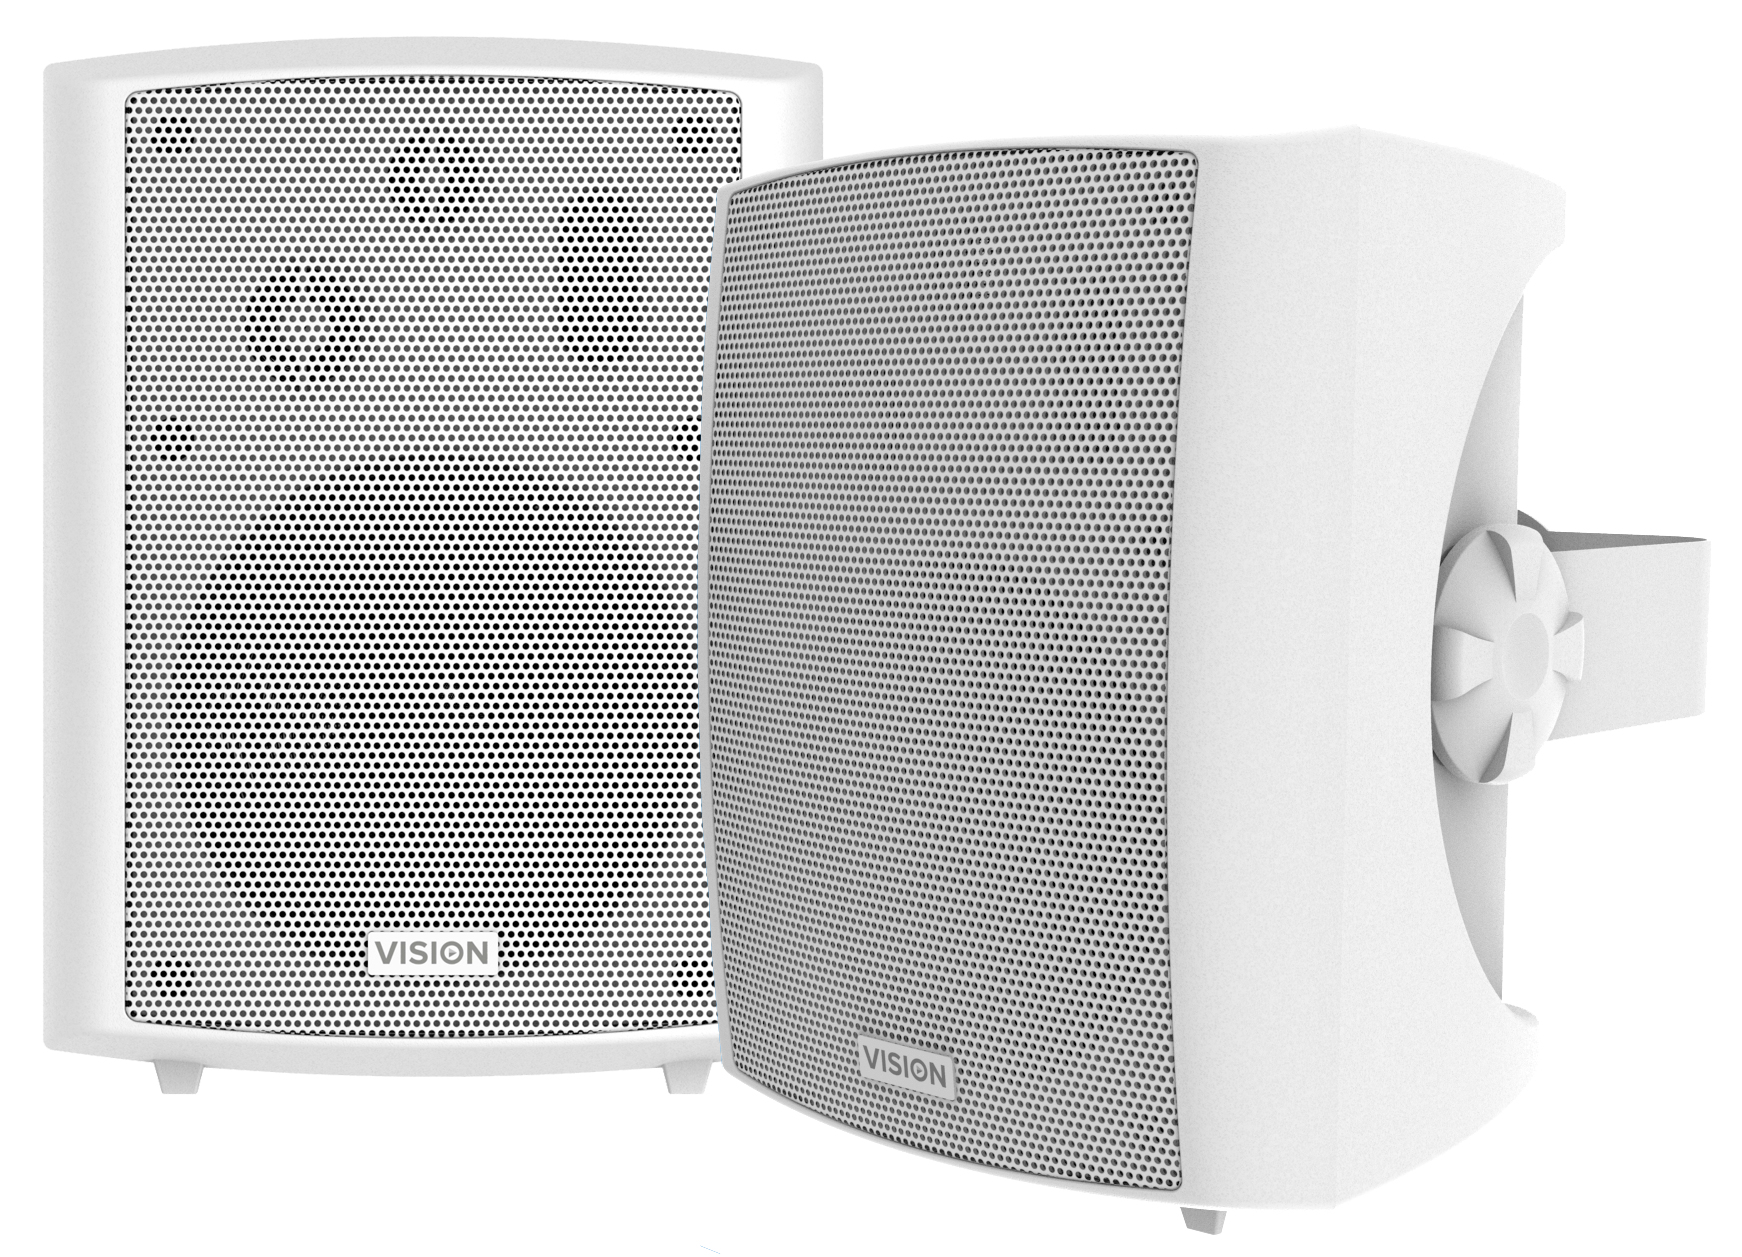 "VISION SP-1800 WHITE WALL LOUDSPEAKERS [PAIR] 50w (rms) Power Handling (each), Low-impedance, 3-way With Bass Reflex, 5.25"" Woofer, 0.5"" Tweeter, Squawker 1"", Horizontal C Brackets Included.  - C2000"